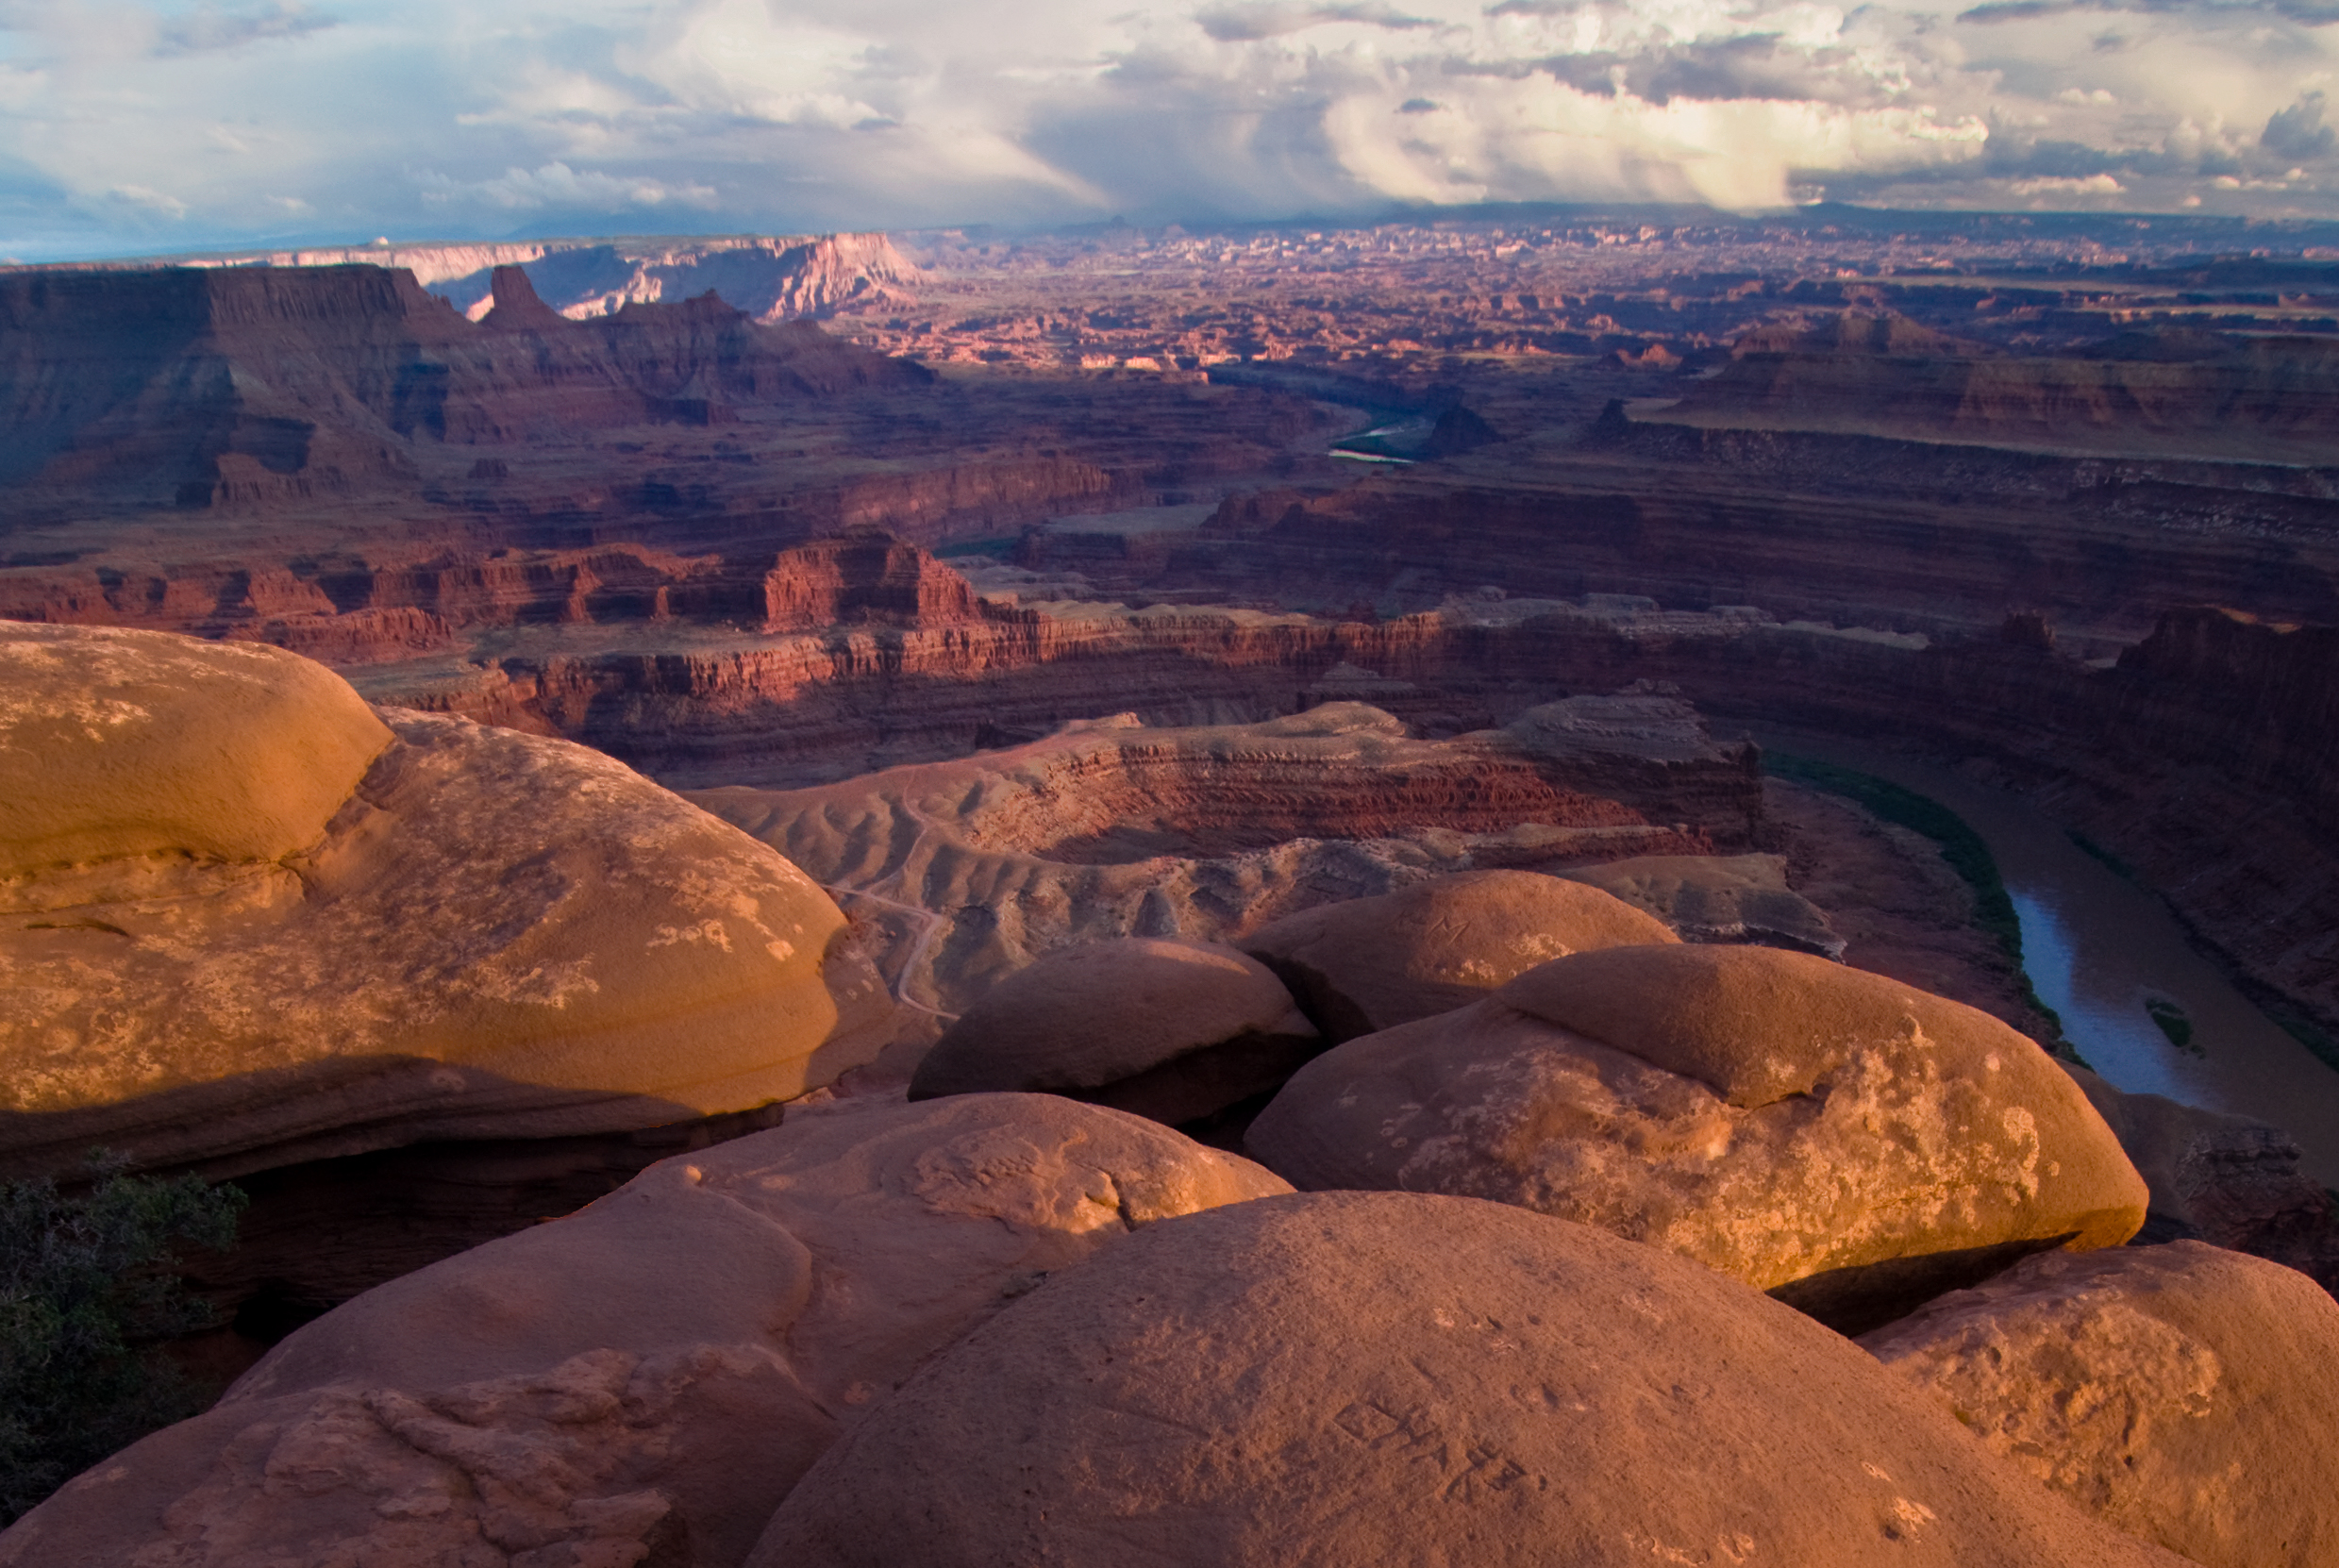 TRAVEL   You will be responsible for arranging your own airfare, hotel, ground transportation and meals during the workshop.   LOCAL FEES   Any additional fees, including entrance into the park, will be your responsibility. Click the link to  Arches & Canyonlands  for information regarding fees and passes.   WHAT TO PACK   Weatherproof Clothing, Trail Shoes or Hiking Boots, Travel Alarm, First Aid Kit, Medications, Cap, Sunglasses, Sunscreen, Lip Balm, Water Bottle, Snacks, Insect Repellent, Hand Sanitizer.   GEAR LIST   Camera Bag, Backpack, DSLR, Mirrorless Camera, Spare Batteries, Memory Cards, Camera Manual, Interchangeable Lenses, ND, Polarizer Filters, Tripod, Head, Pocket Flashlights, Cable Release, Camera Cleaning Supplies, Rocket Blower, Laptop, Notebook, Memory Card Reader, Flash Drive.